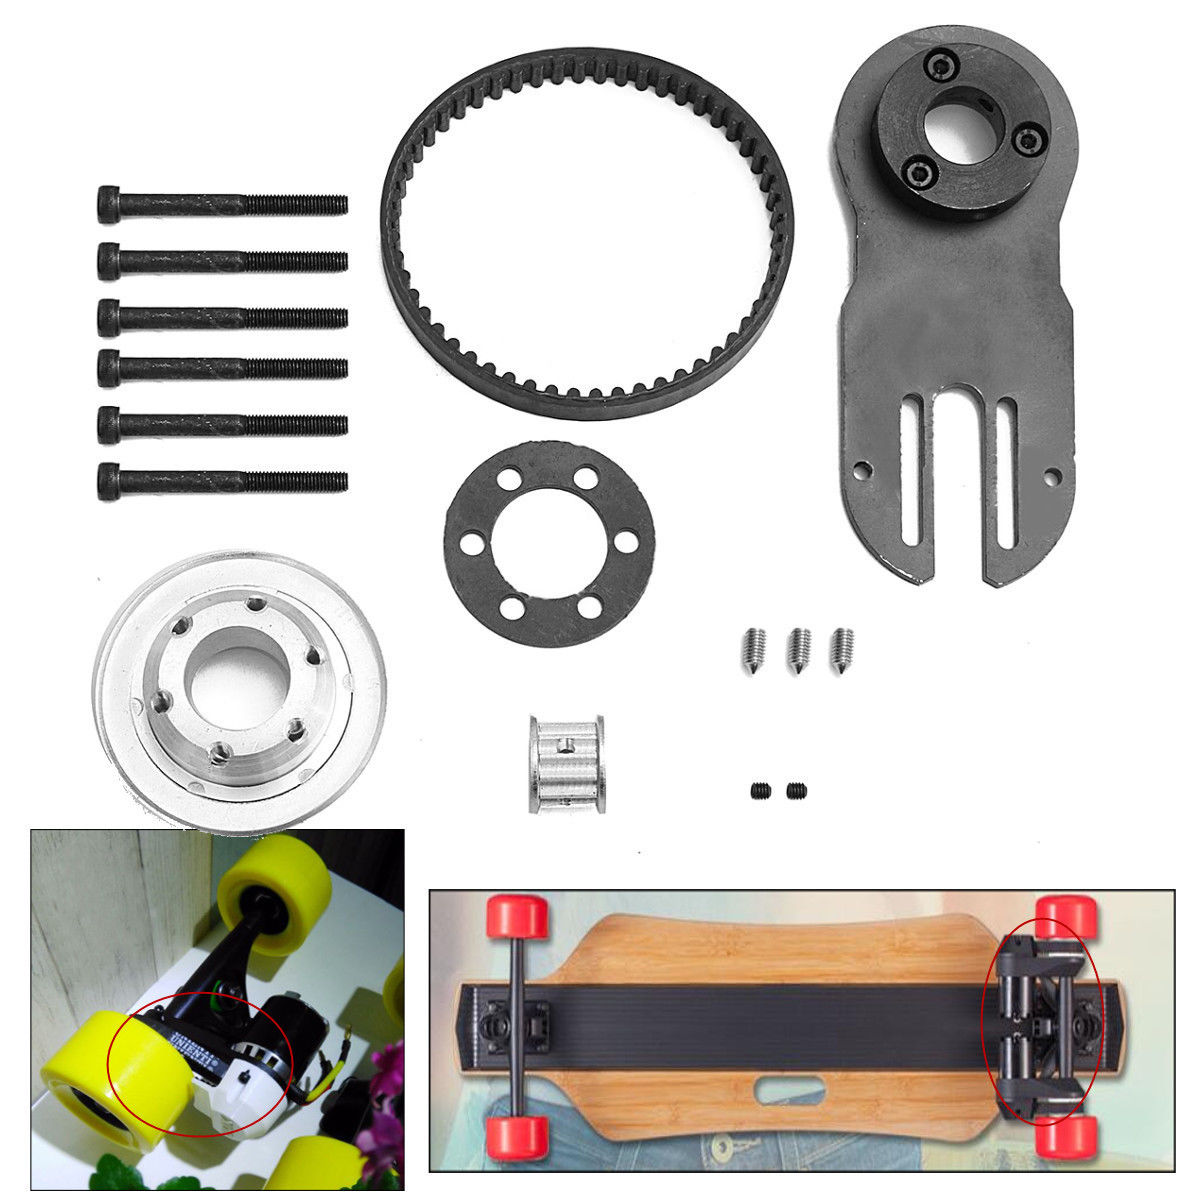 Mayitr Electric Skateboard Parts Pulleys Motor Mount Kit Tool for 83/90/97mm Wheels Skate Board Accessories 50mm 53mm 101a chocolate skateboard wheels made by high density pu 4 wheels for skate trucks parts to set up for the board